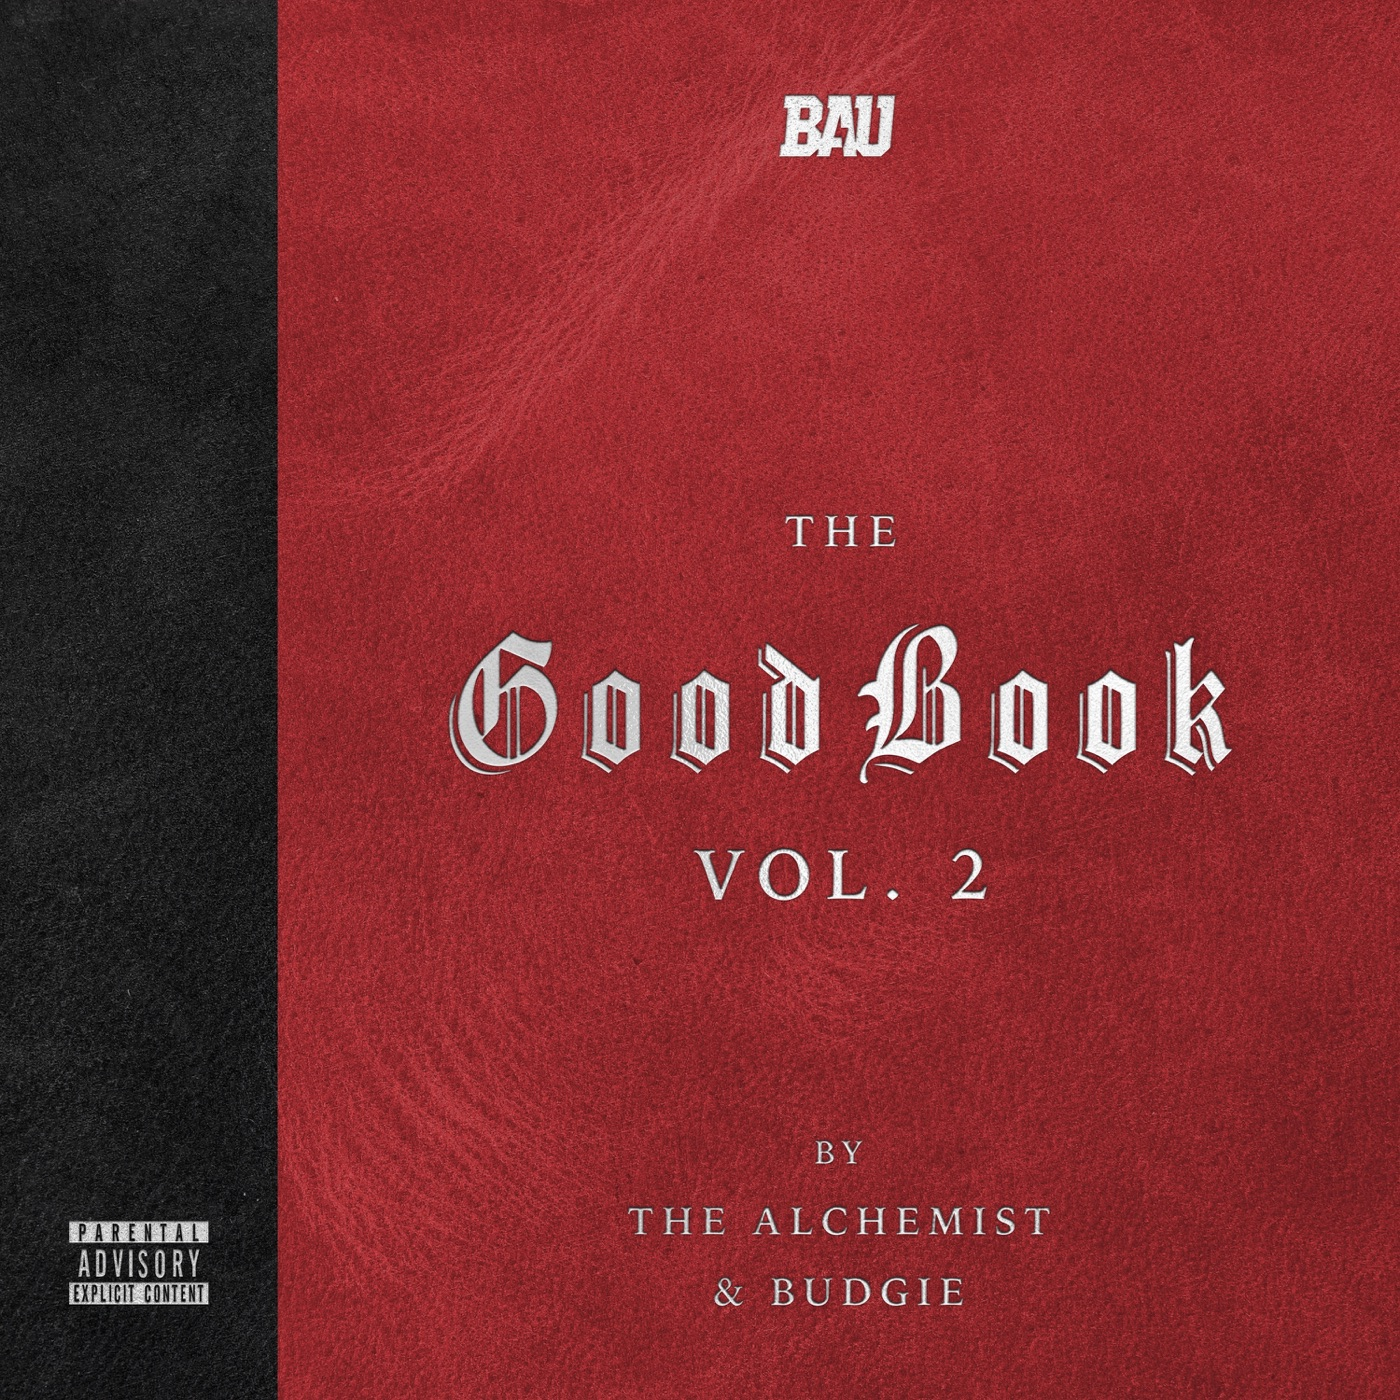 The Alchemist & Budgie - The Good Book, Vol. 2 Cover